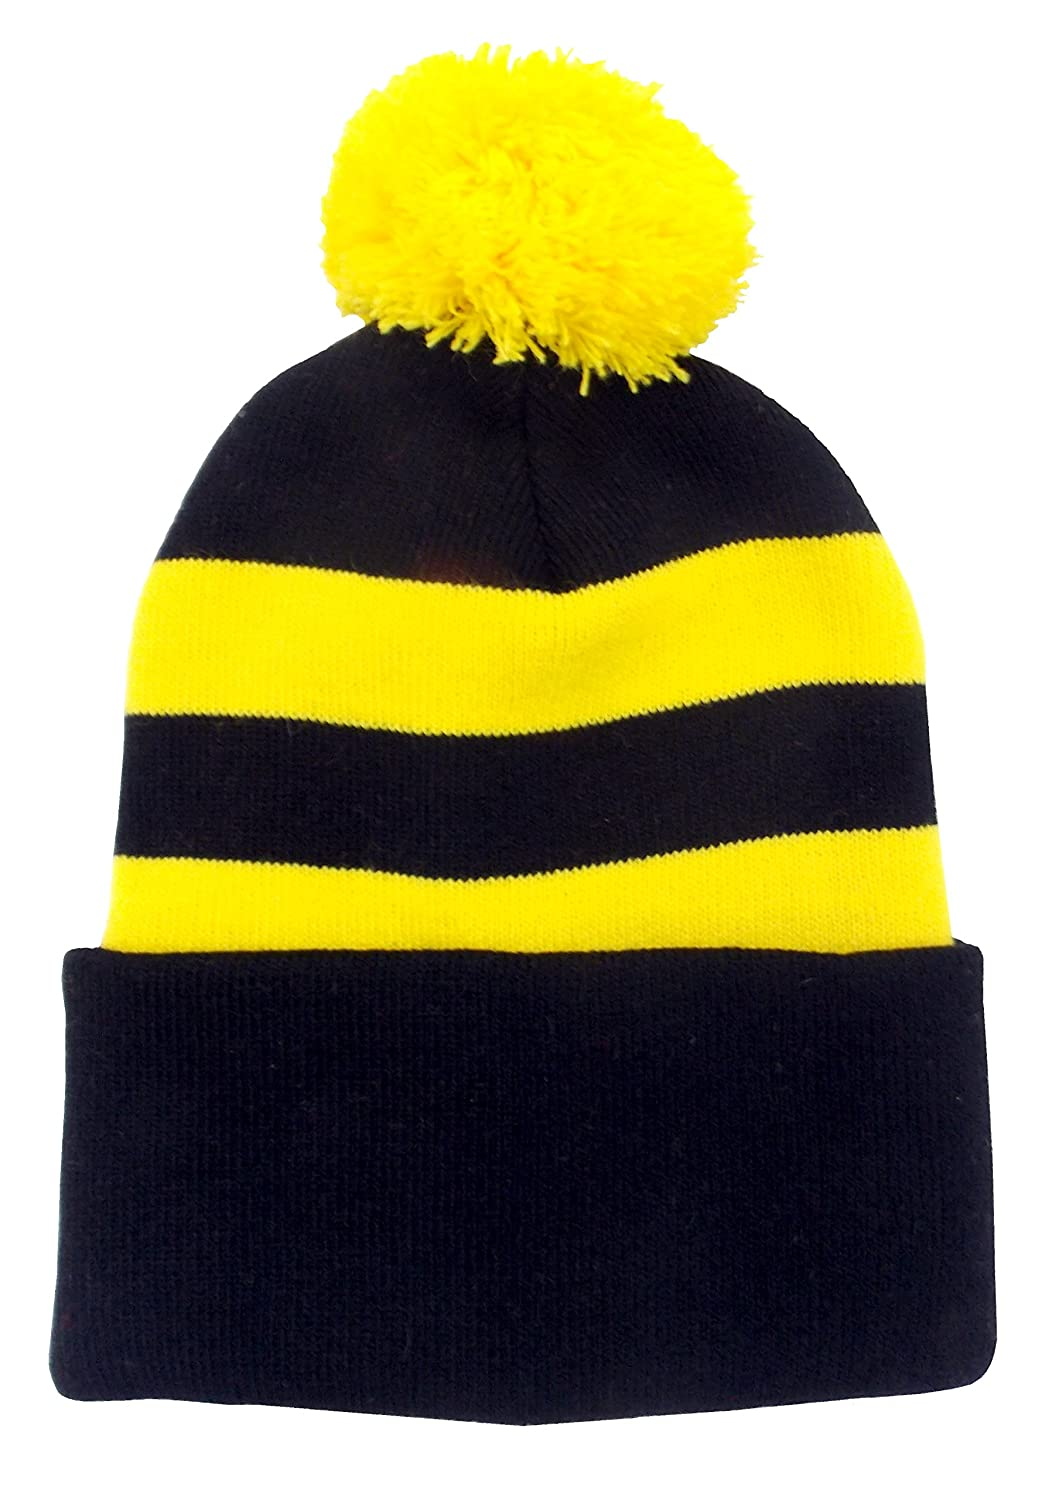 e50baf681d9 Arena Black and Yellow Retro Style Bobble Hat  Amazon.co.uk  Sports    Outdoors